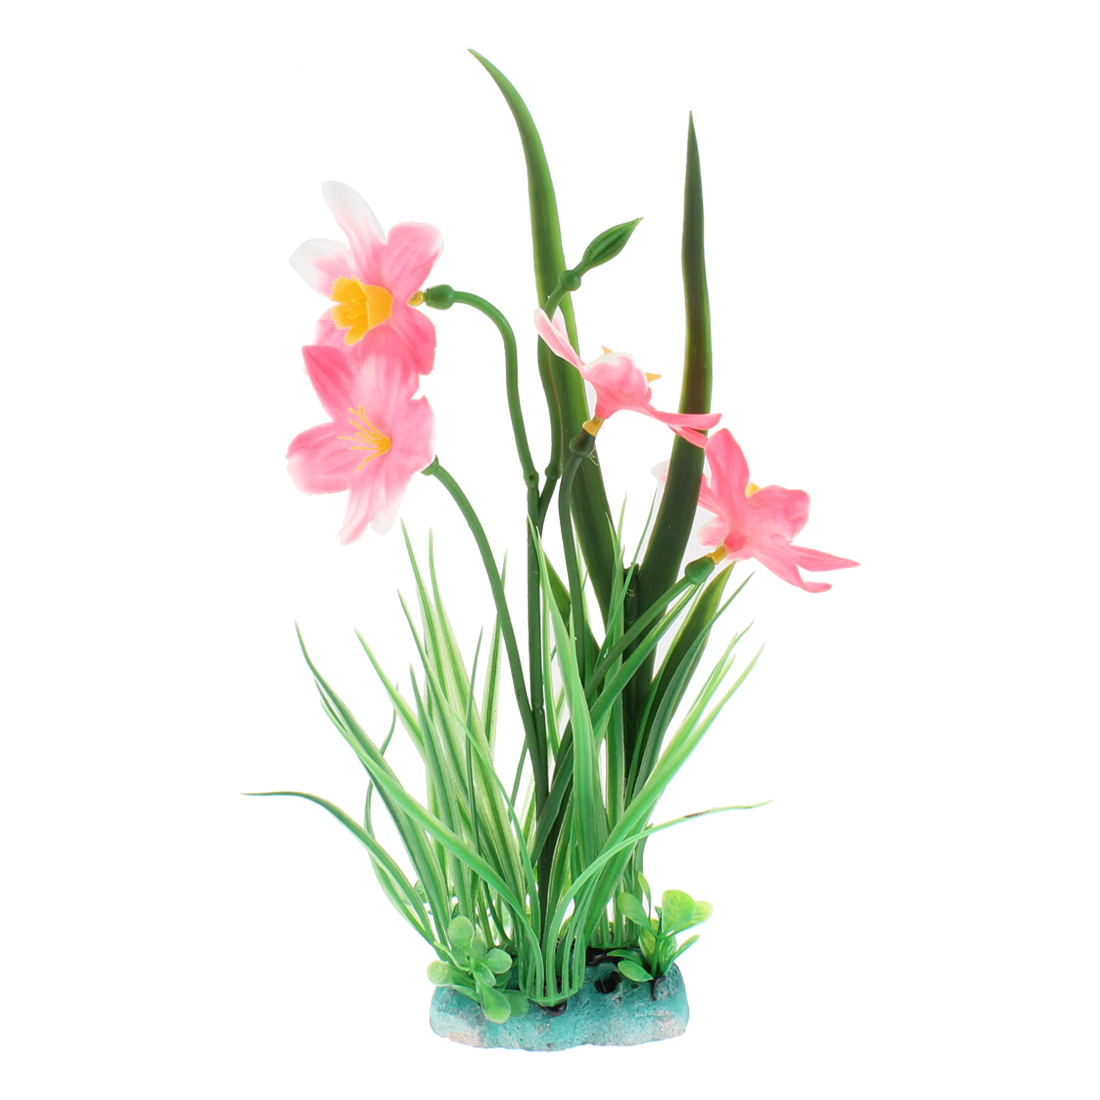 Aquarium Plastic Manmade Flower Grass Plant Landscaping Pink Green